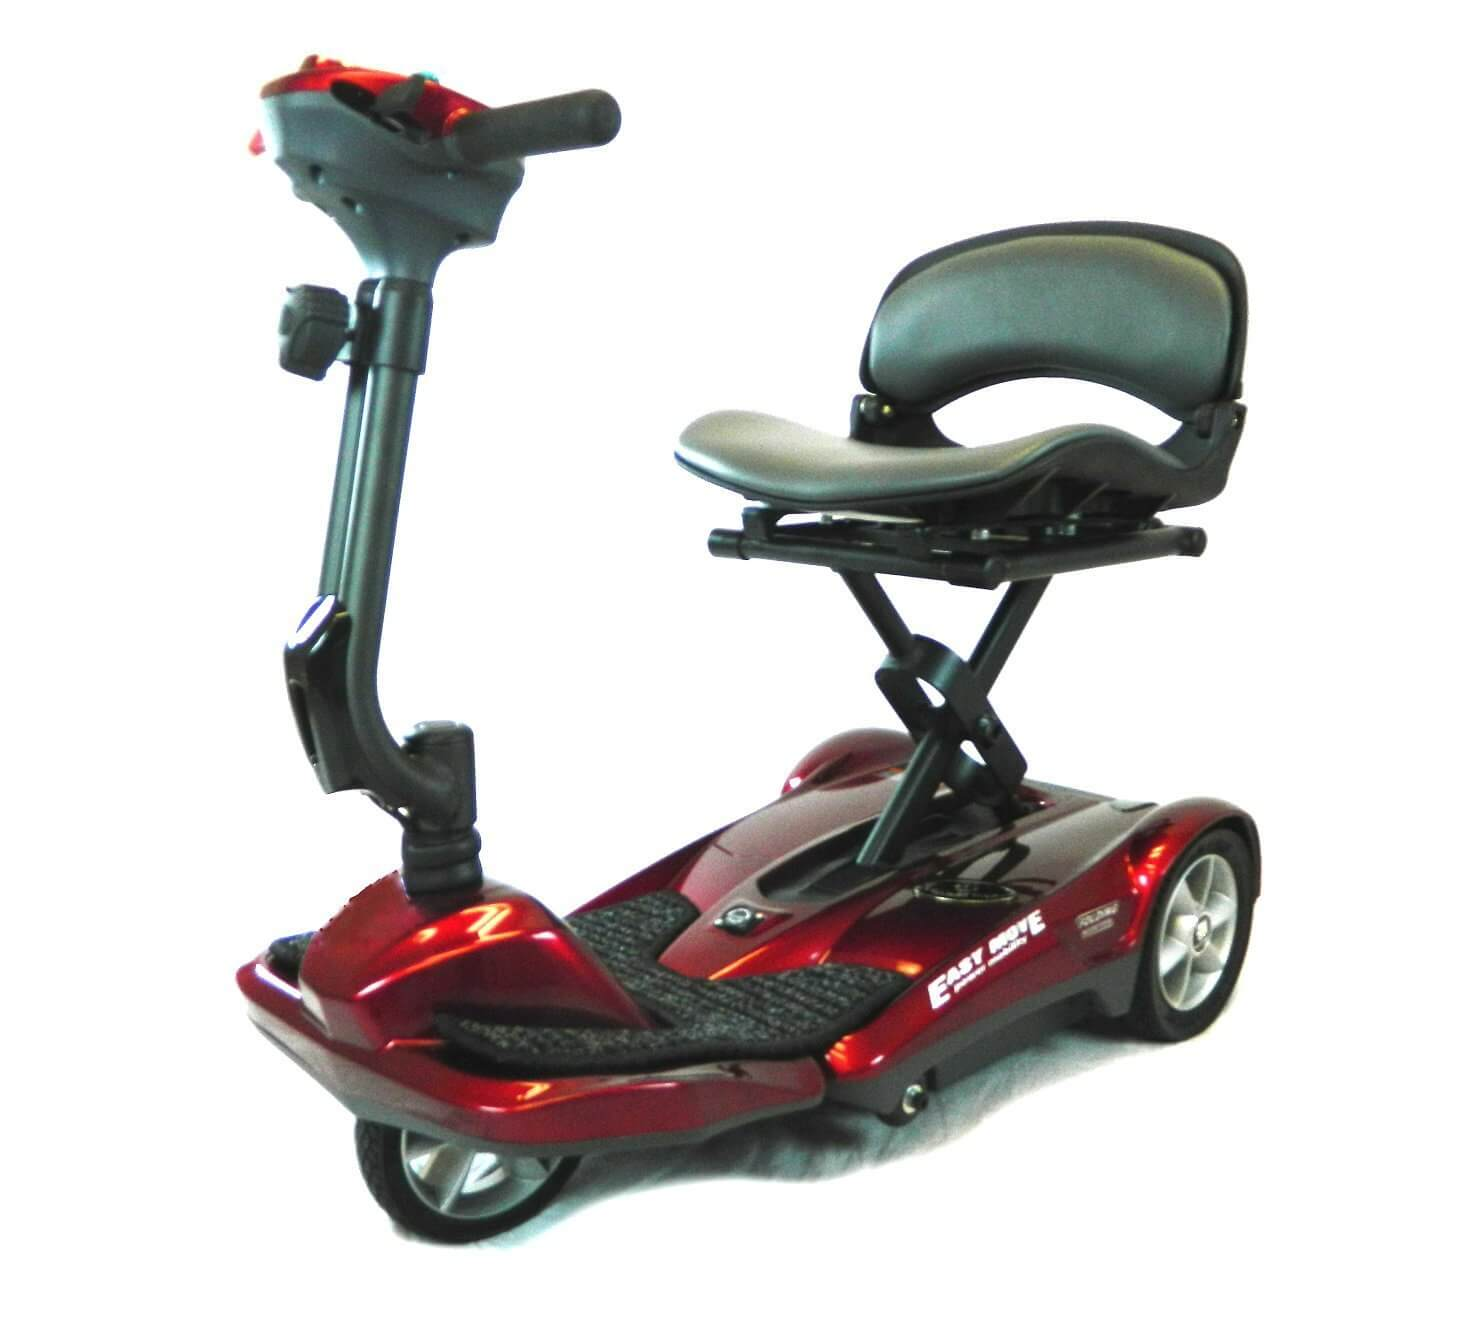 Heartway Passport Easy Move Mobility Scooter - Best Folding Mobility Scooter